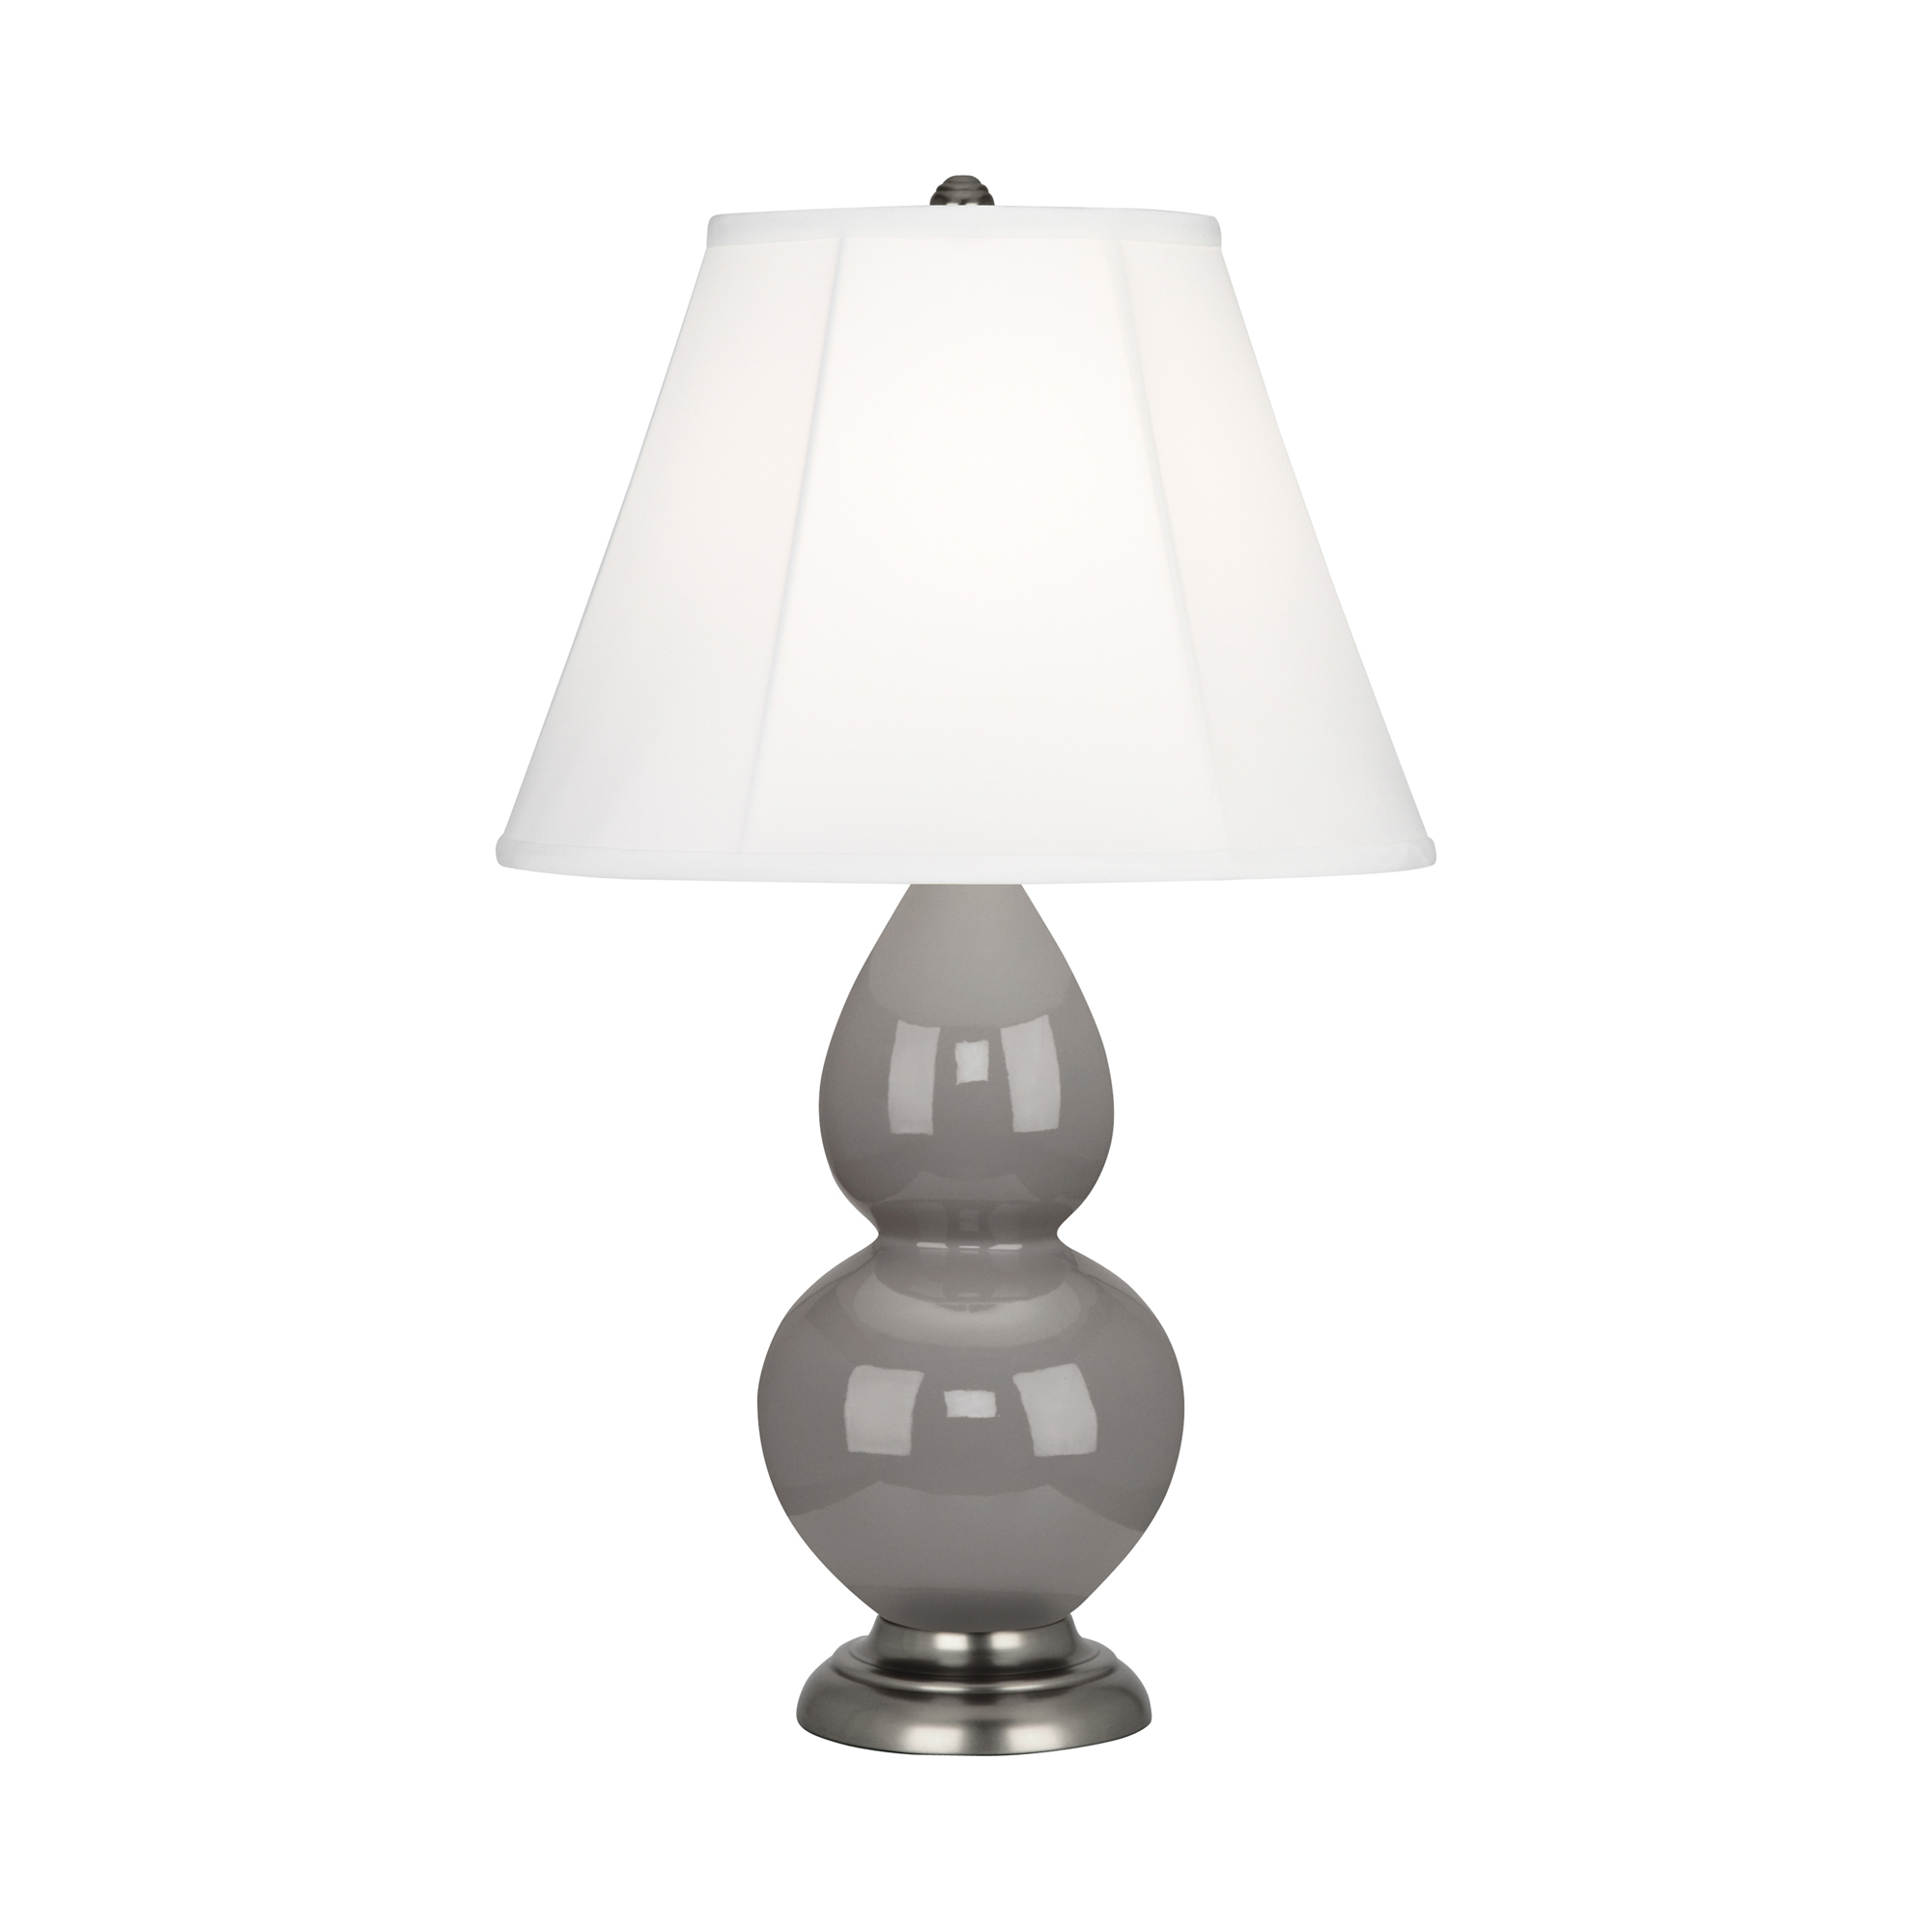 Small Double Gourd Accent Lamp Style #1770